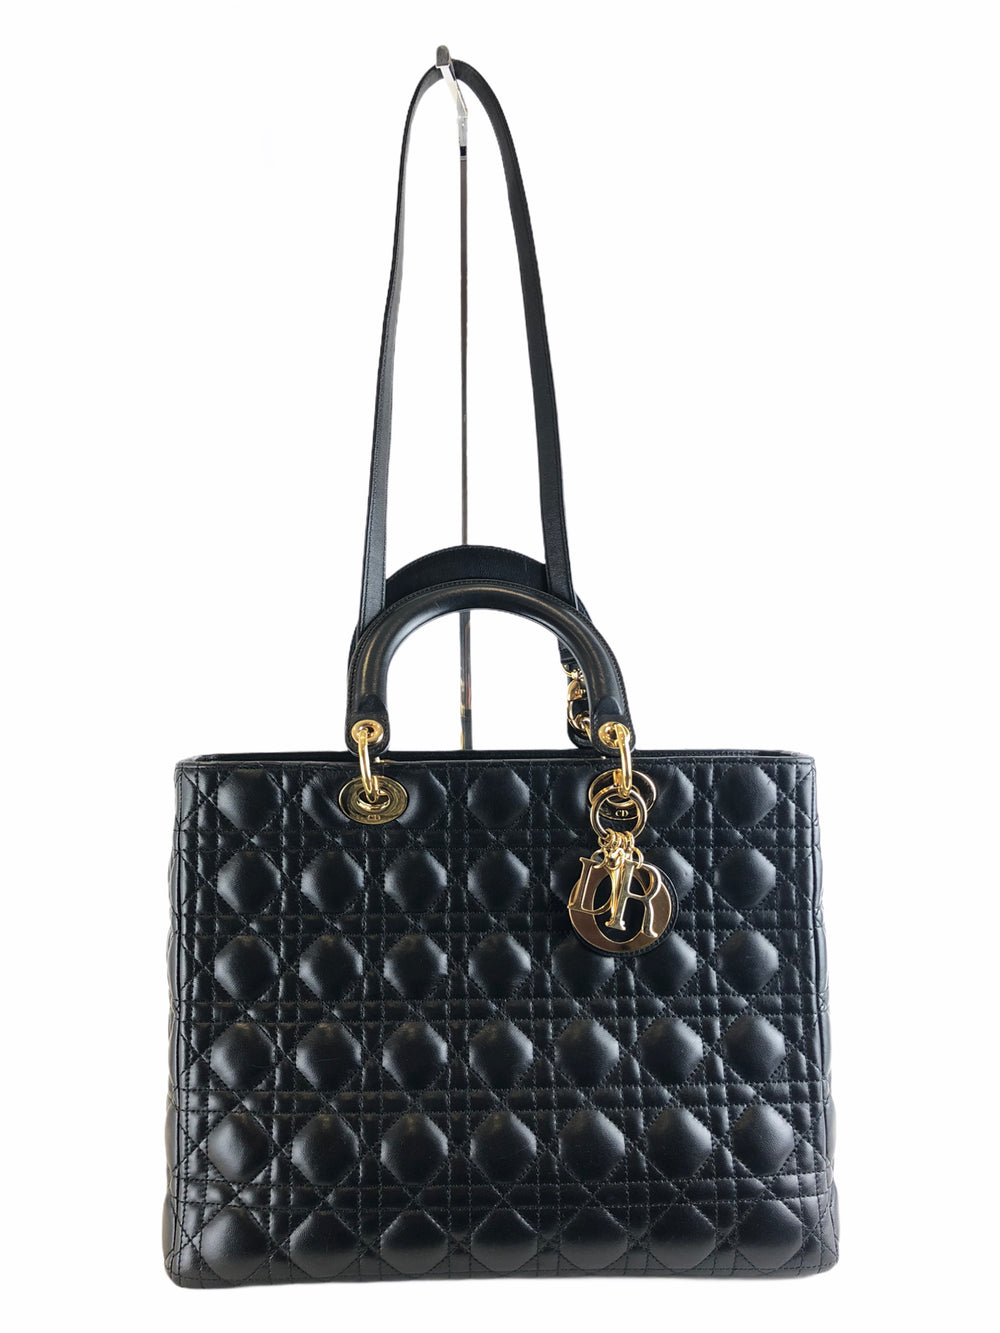 Christian Dior Black Leather